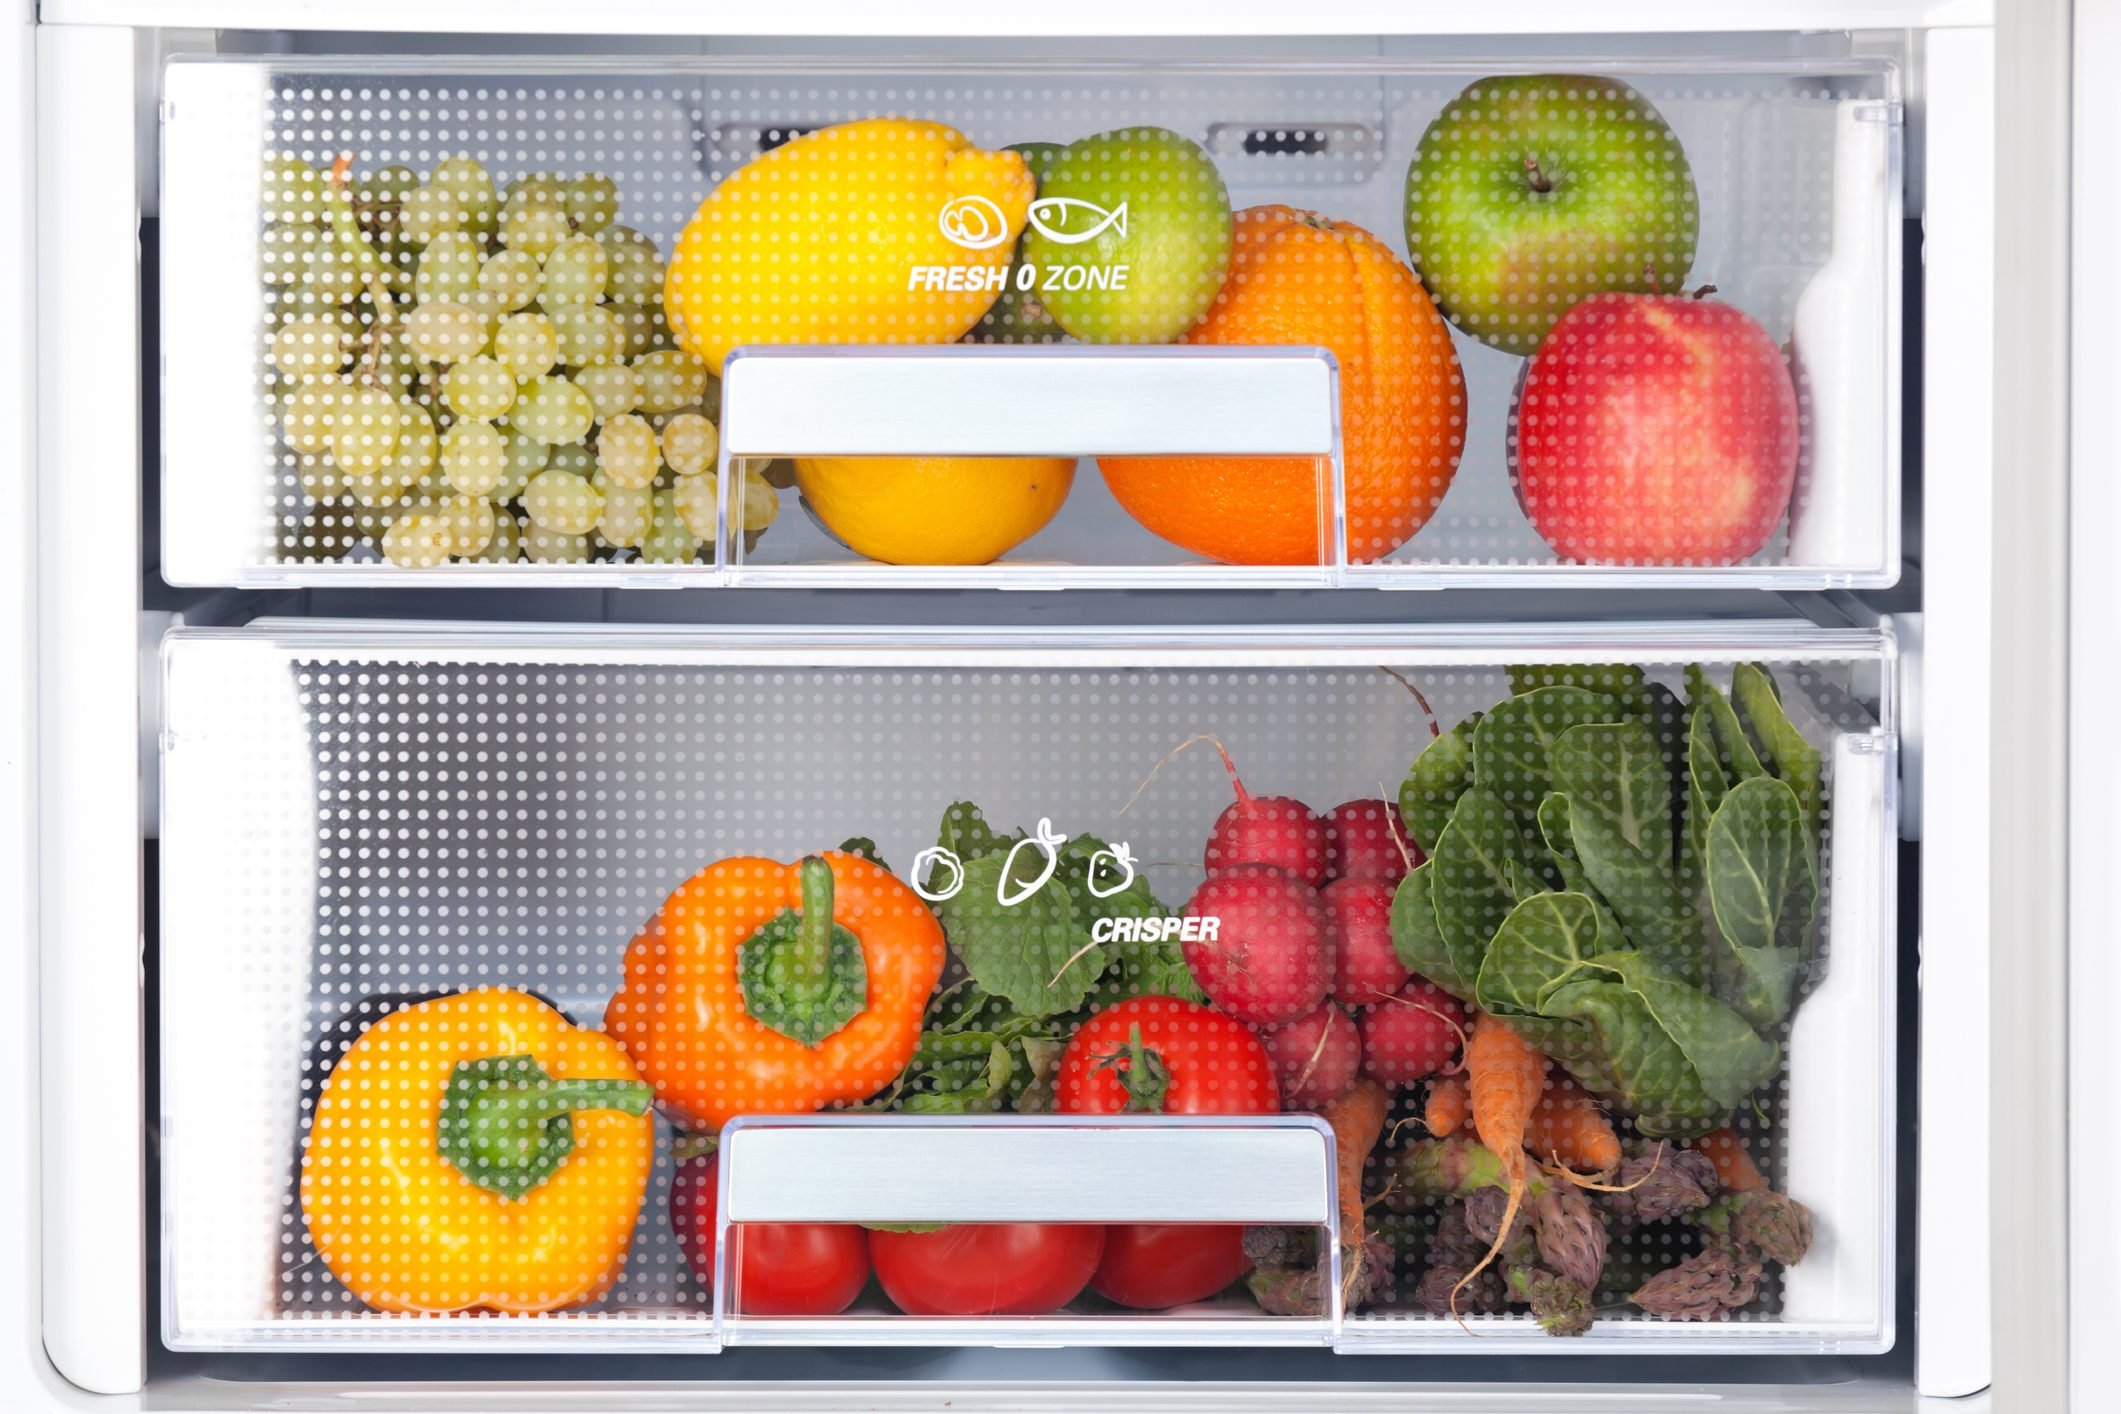 detail of fridge with fresh food